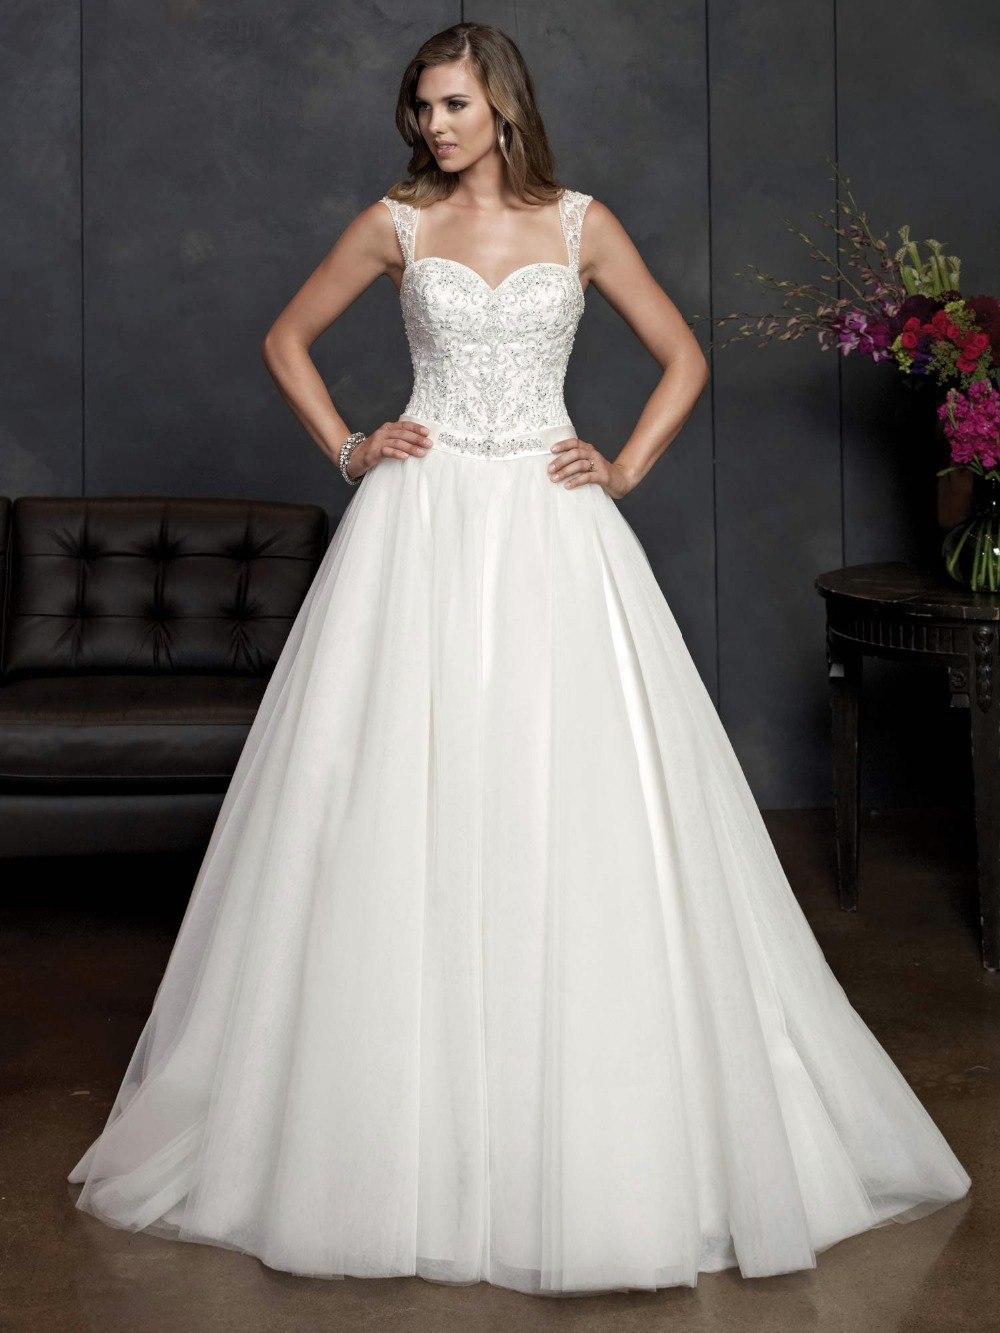 2014 New Arrival A line Tulle Satin Elegant Wedding dress Sweetheart Removable strap Beading Waistband Floor length Sweep(China (Mainland))